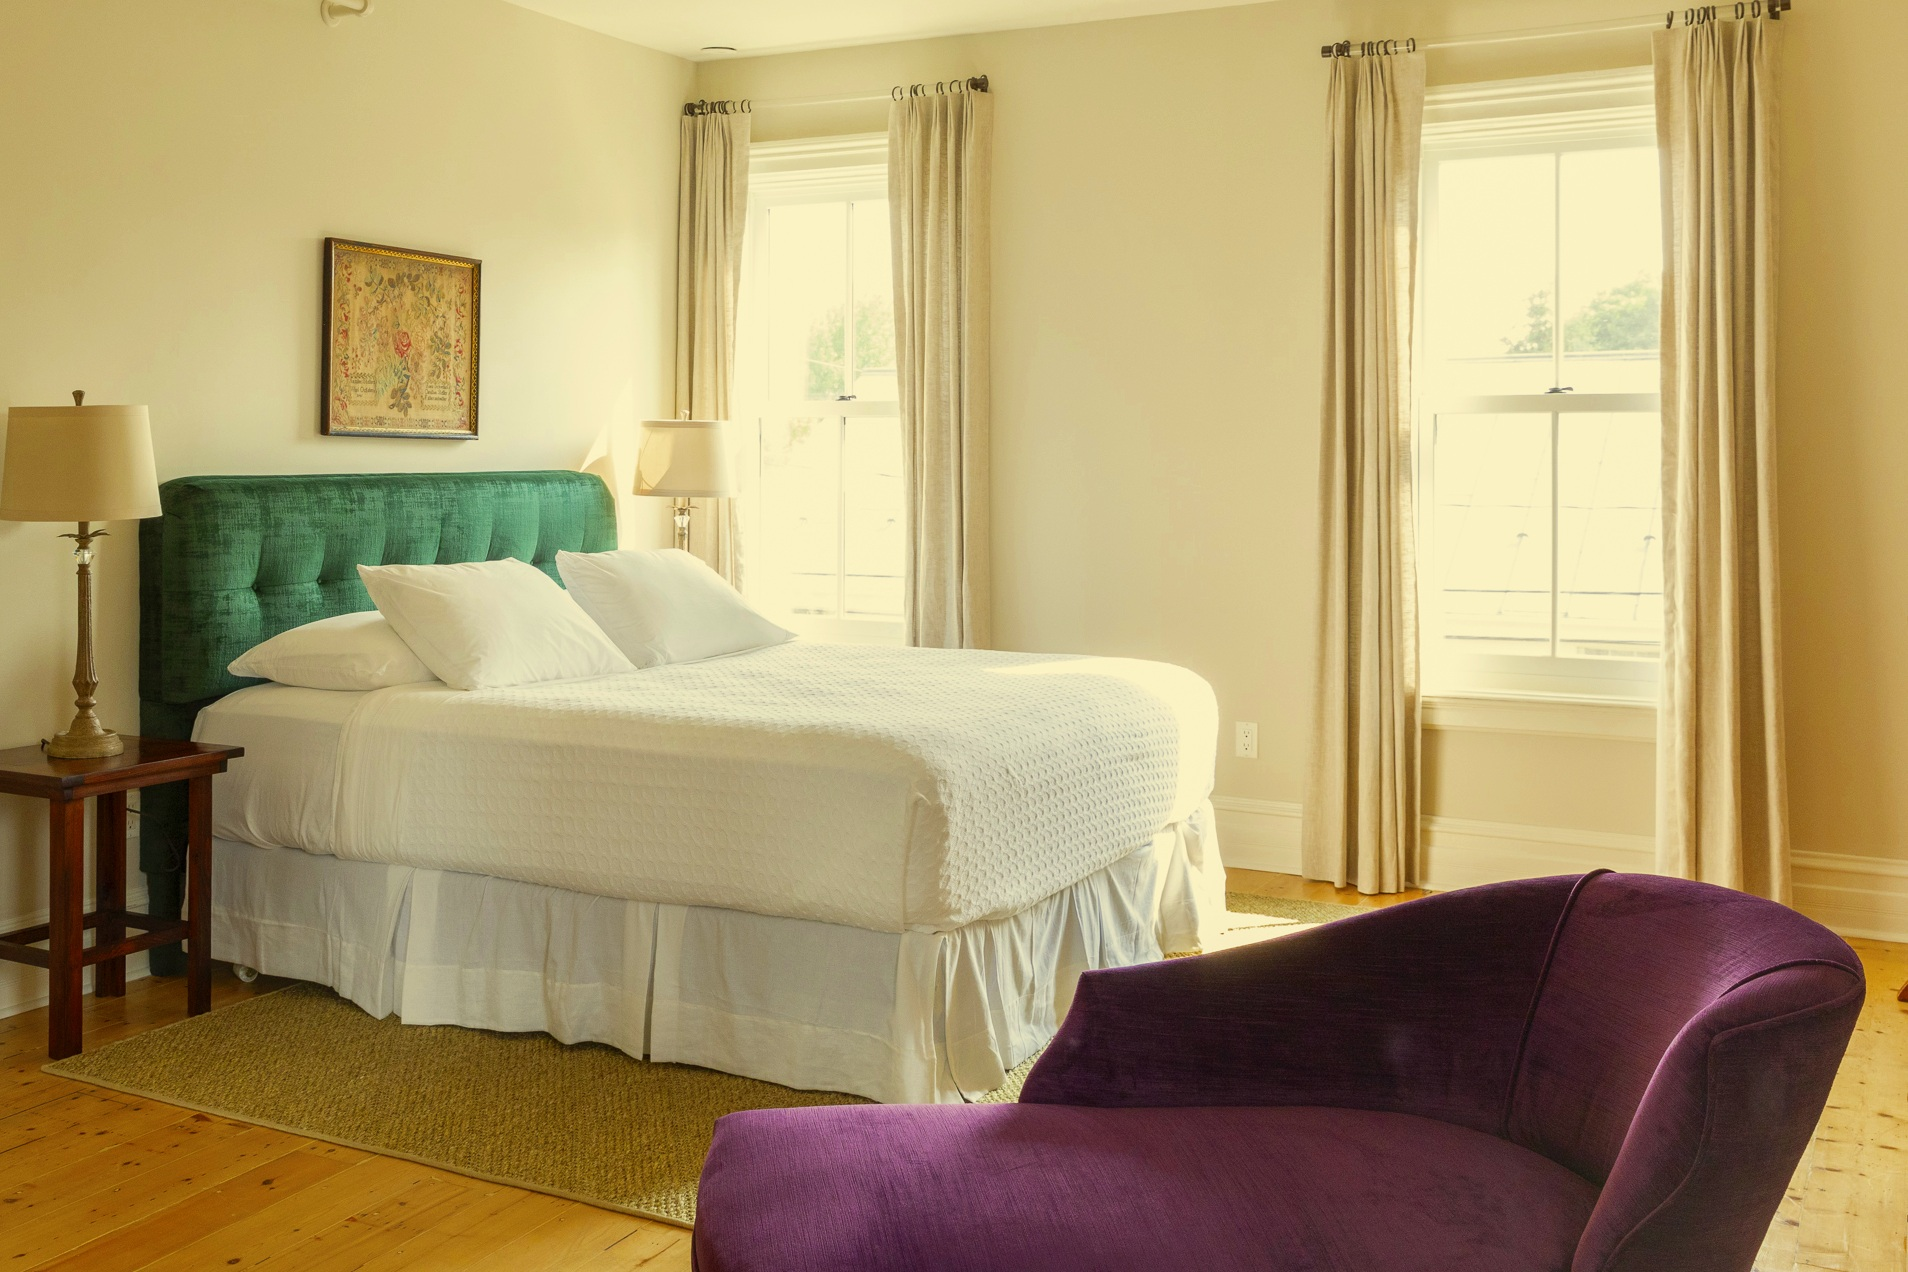 Rooms - Relax in our luxurious bedding, robes and slippers and custom amenities. Continental breakfast included.